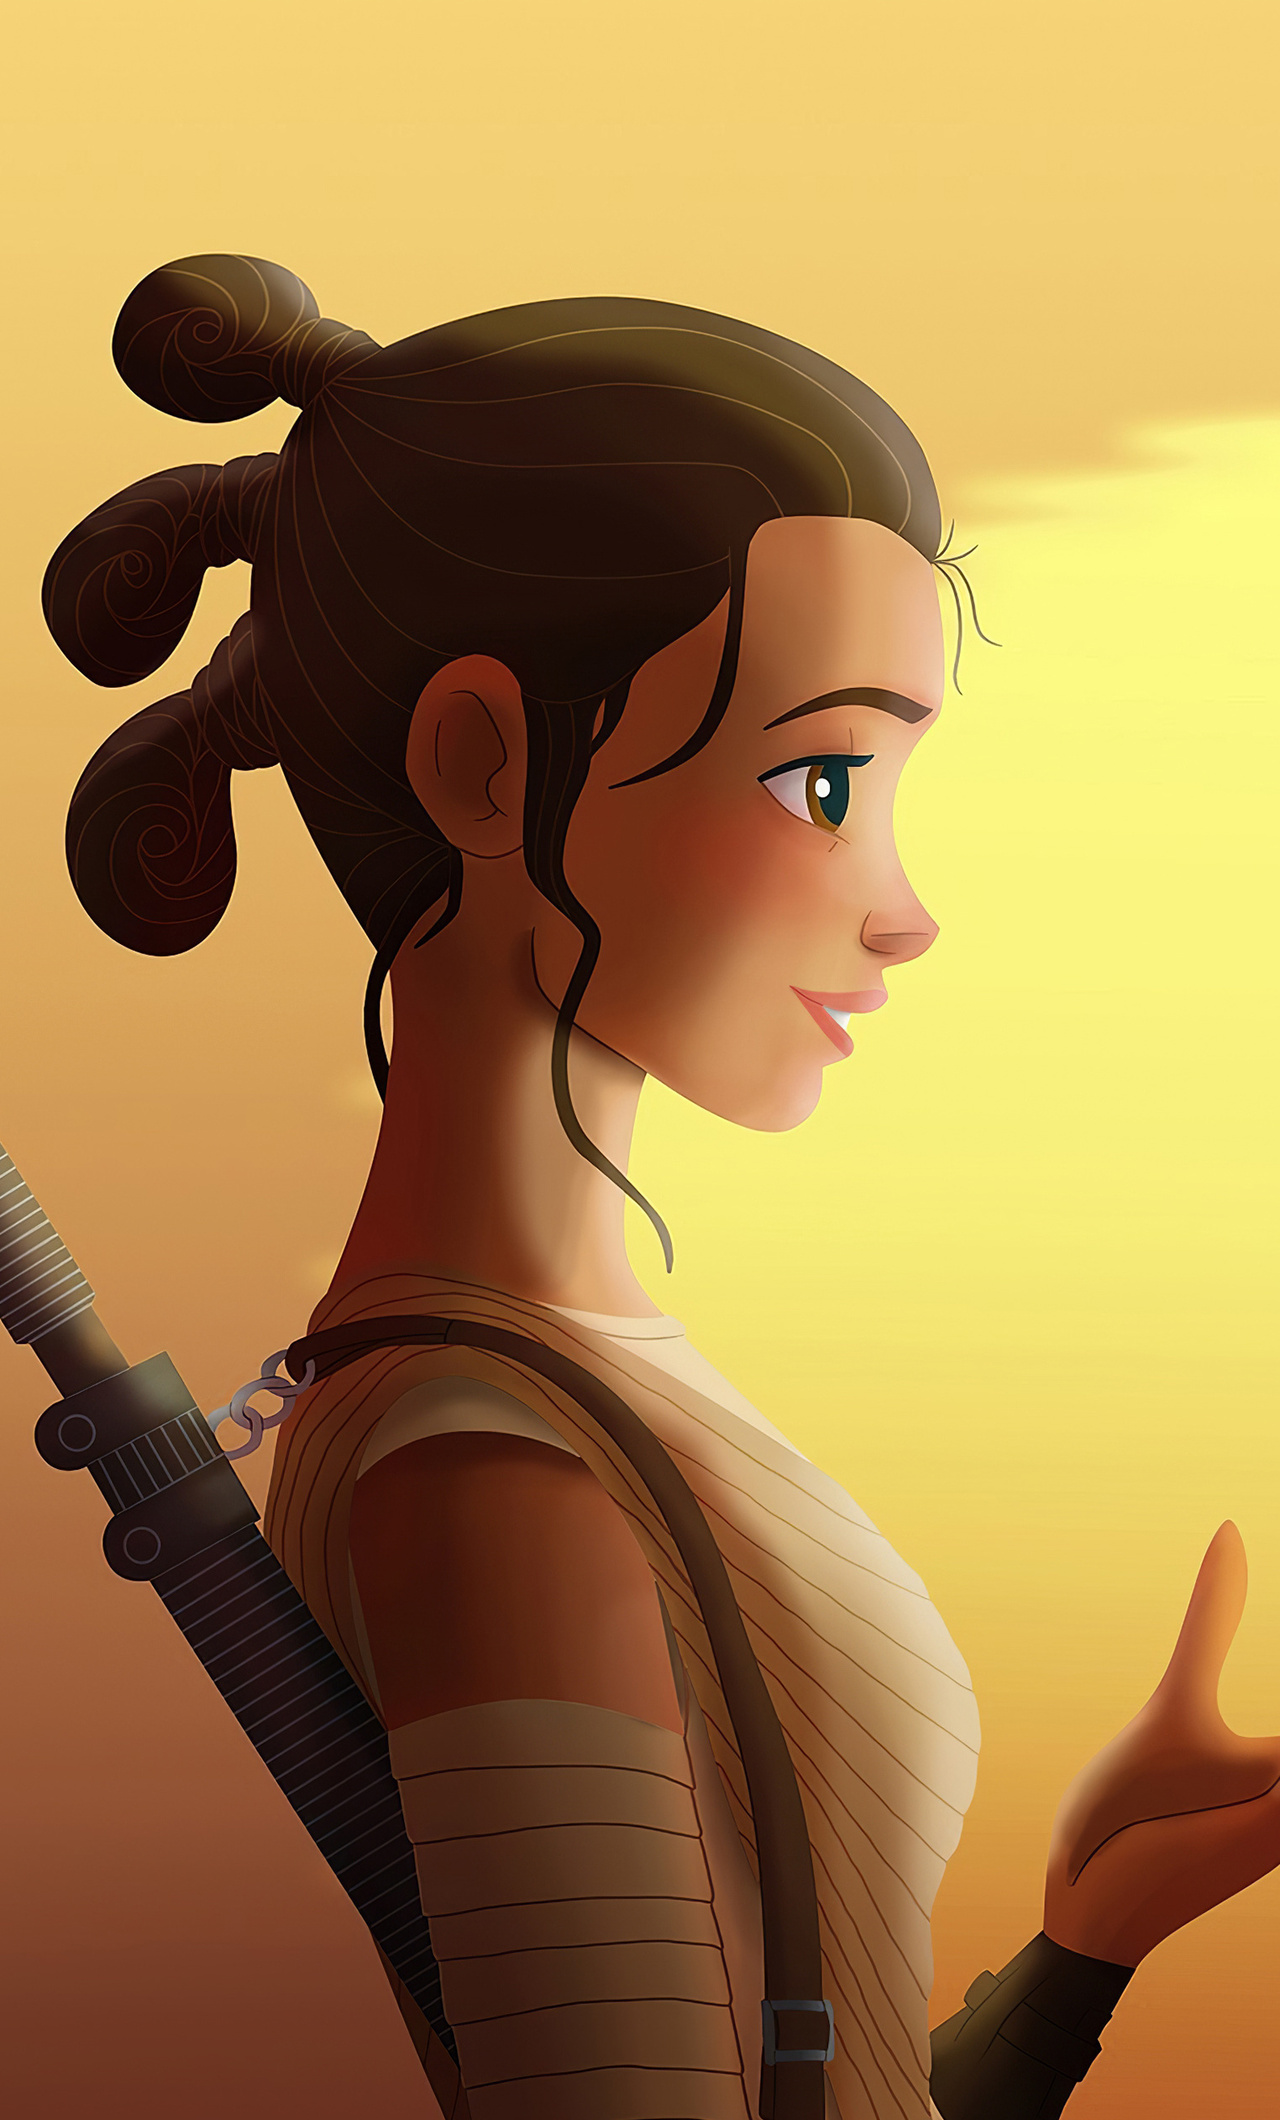 1280x2120 Star Wars Rey And Bb8 4k Iphone 6 Hd 4k Wallpapers Images Backgrounds Photos And Pictures